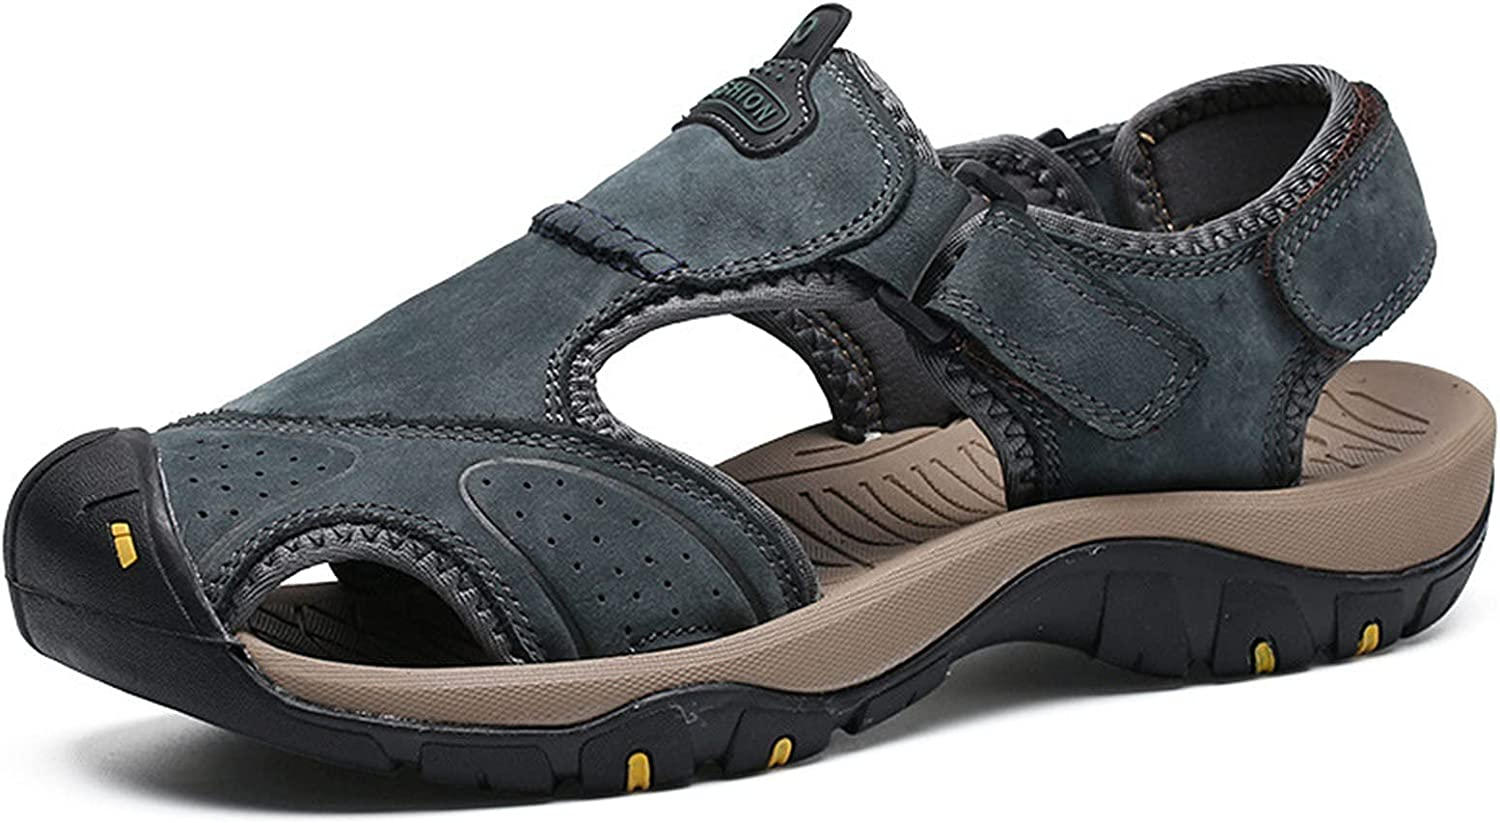 Men's Tucson Mall Sport Sandals Outdoor Hiking Toe Leather Closed At Ranking TOP1